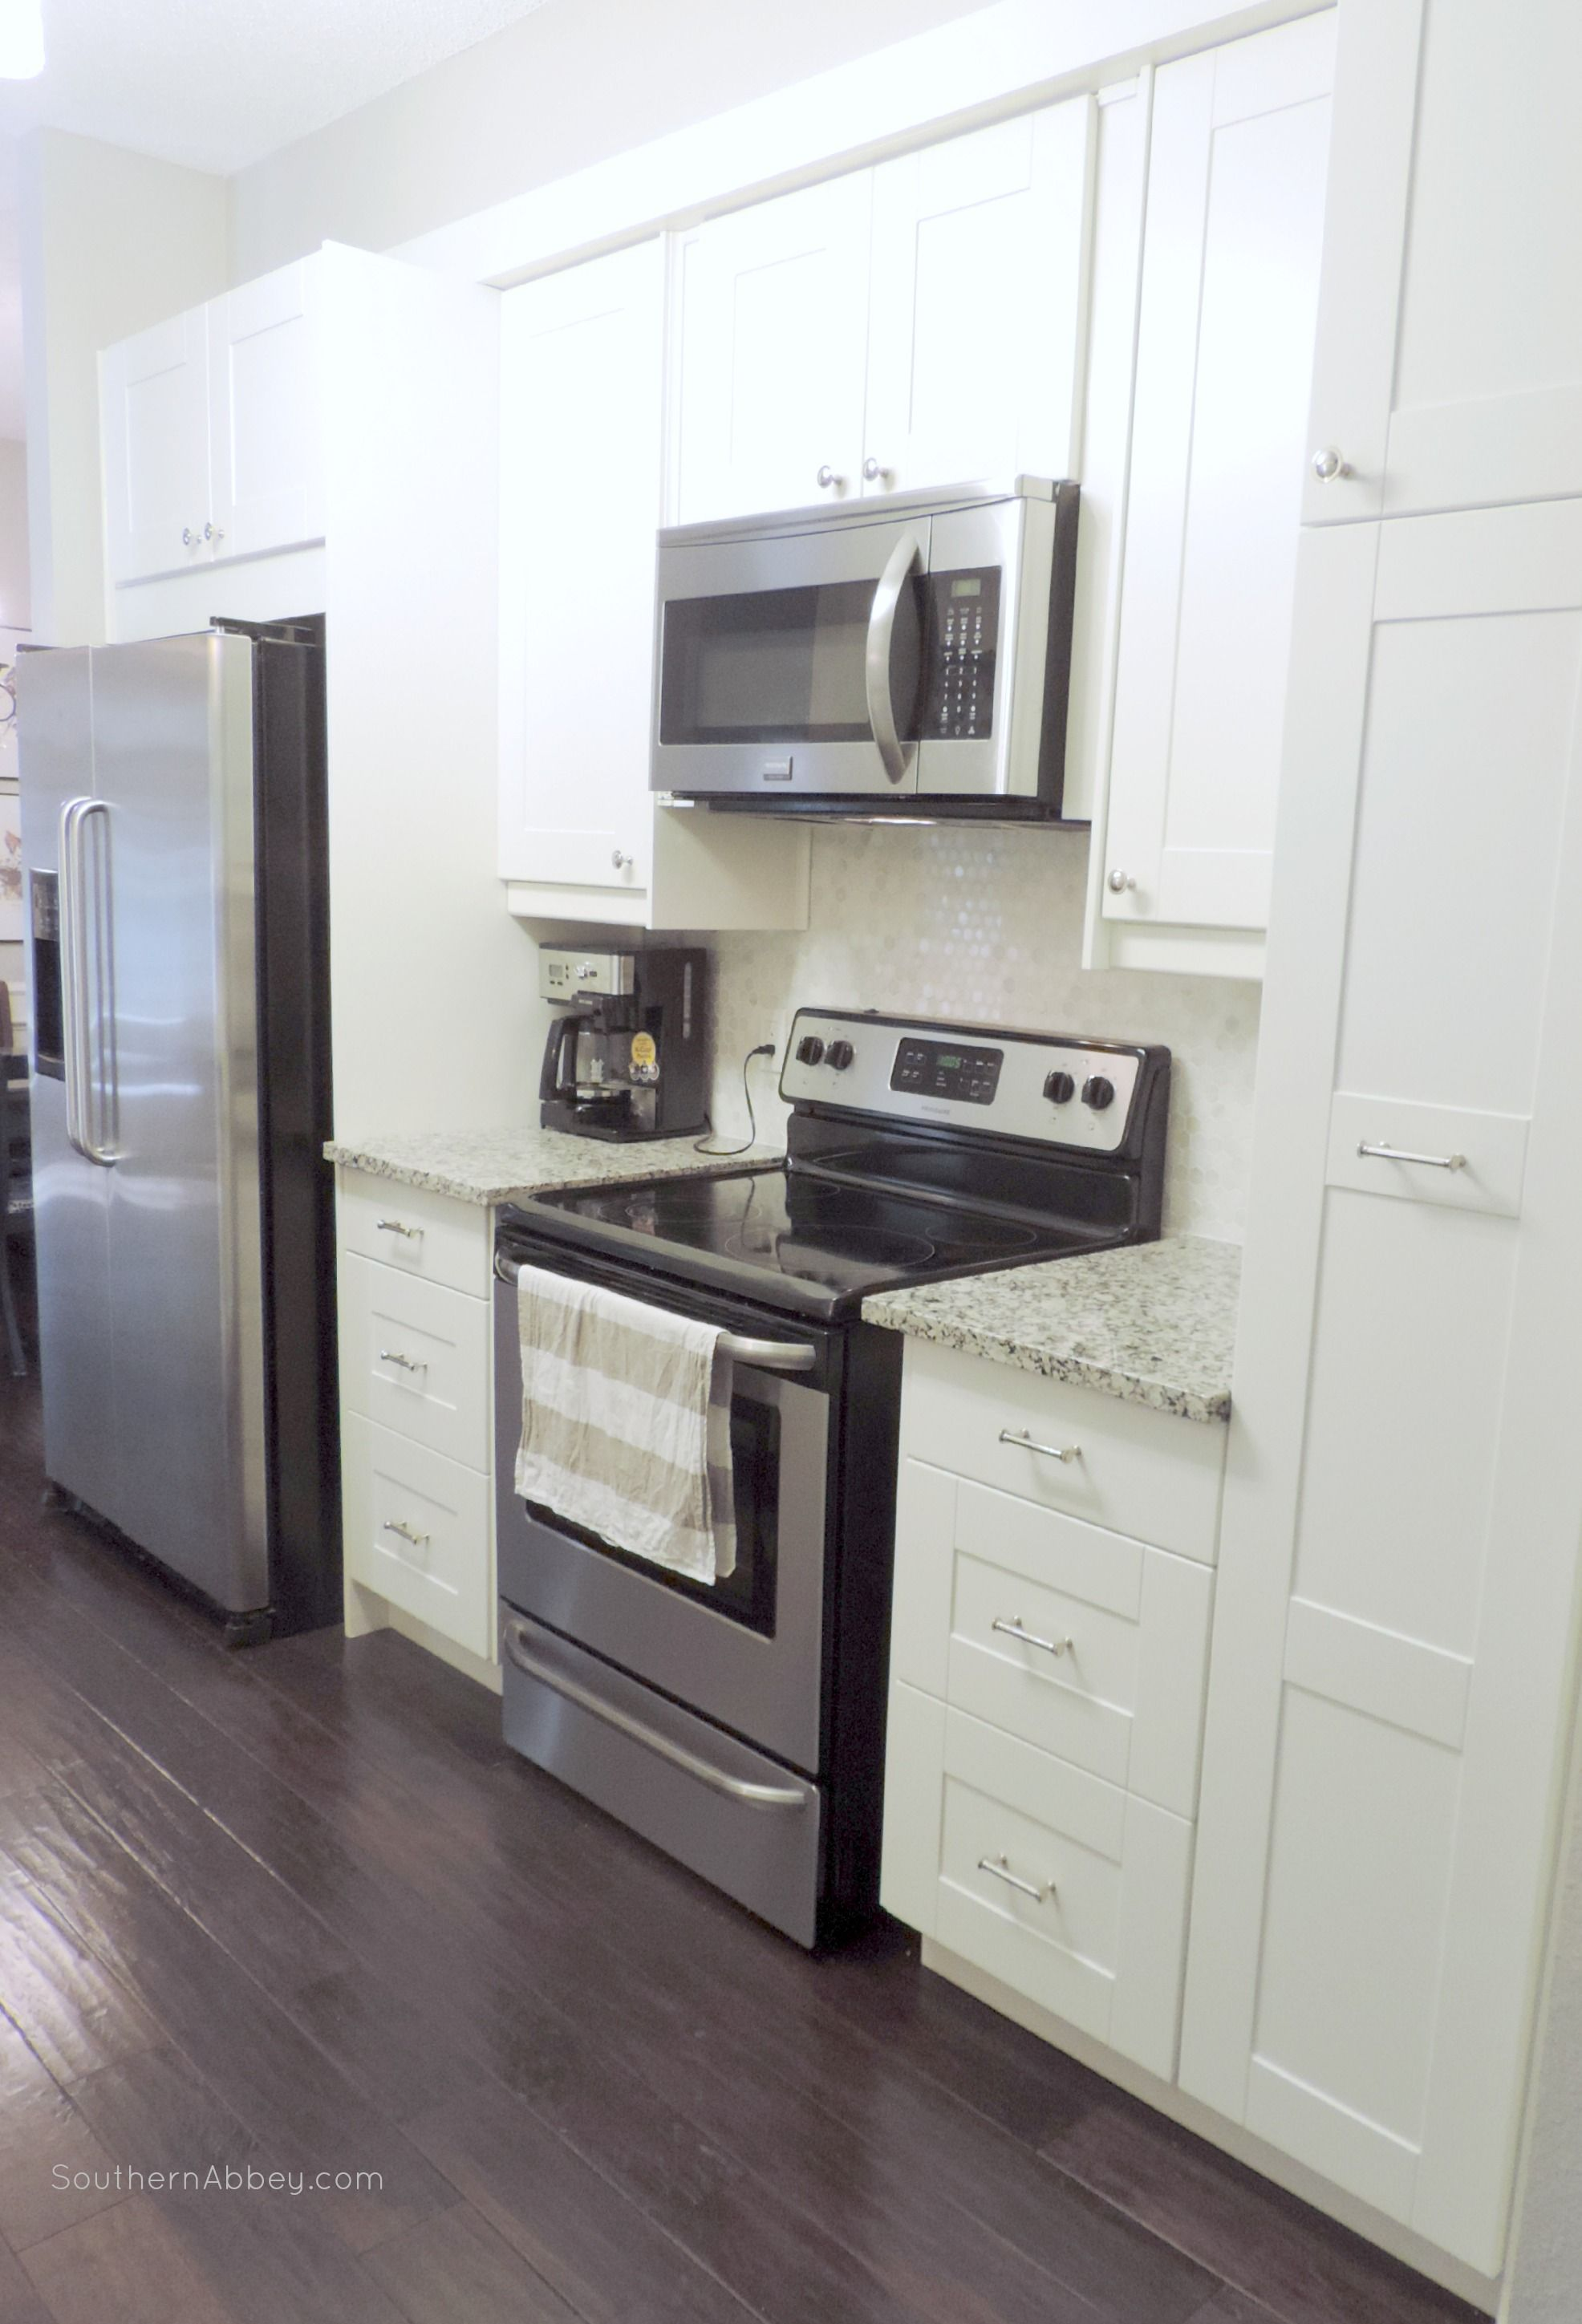 Ikea adel cabinets for laundry room